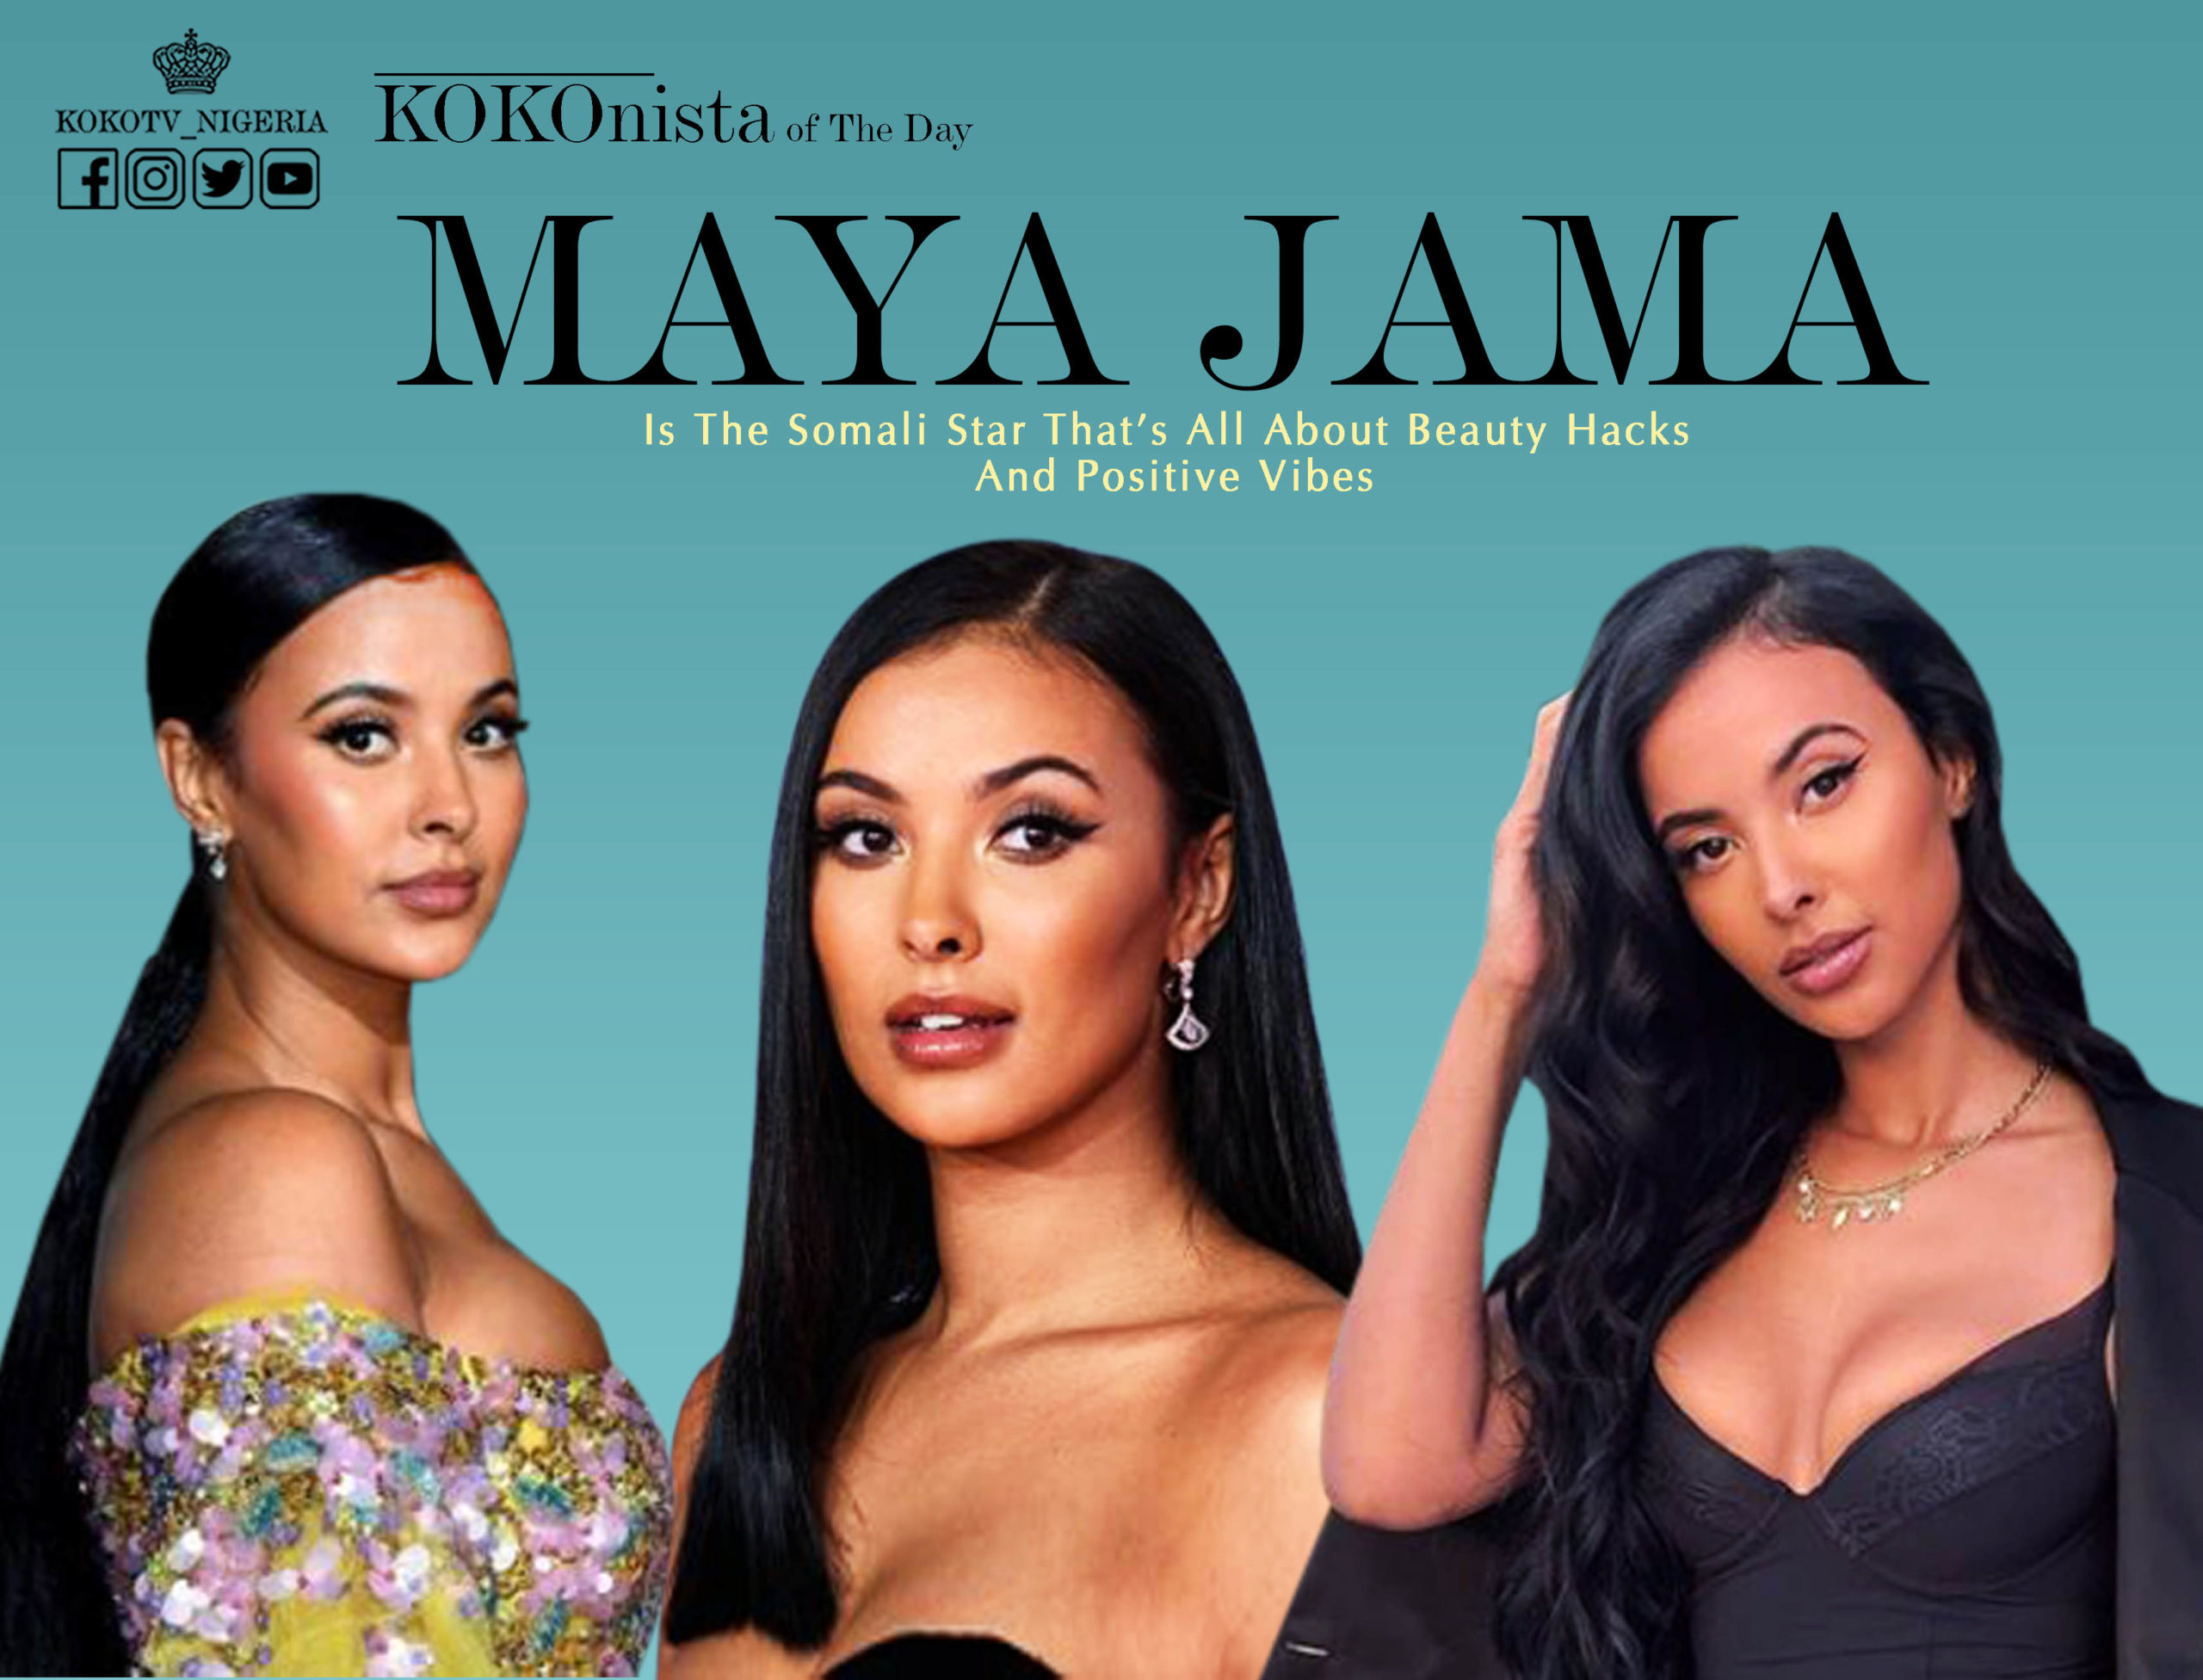 KOKOnista Of The Day: Maya Jama Is The Somali Star That's All About Breaking Barriers And Positive Vibes